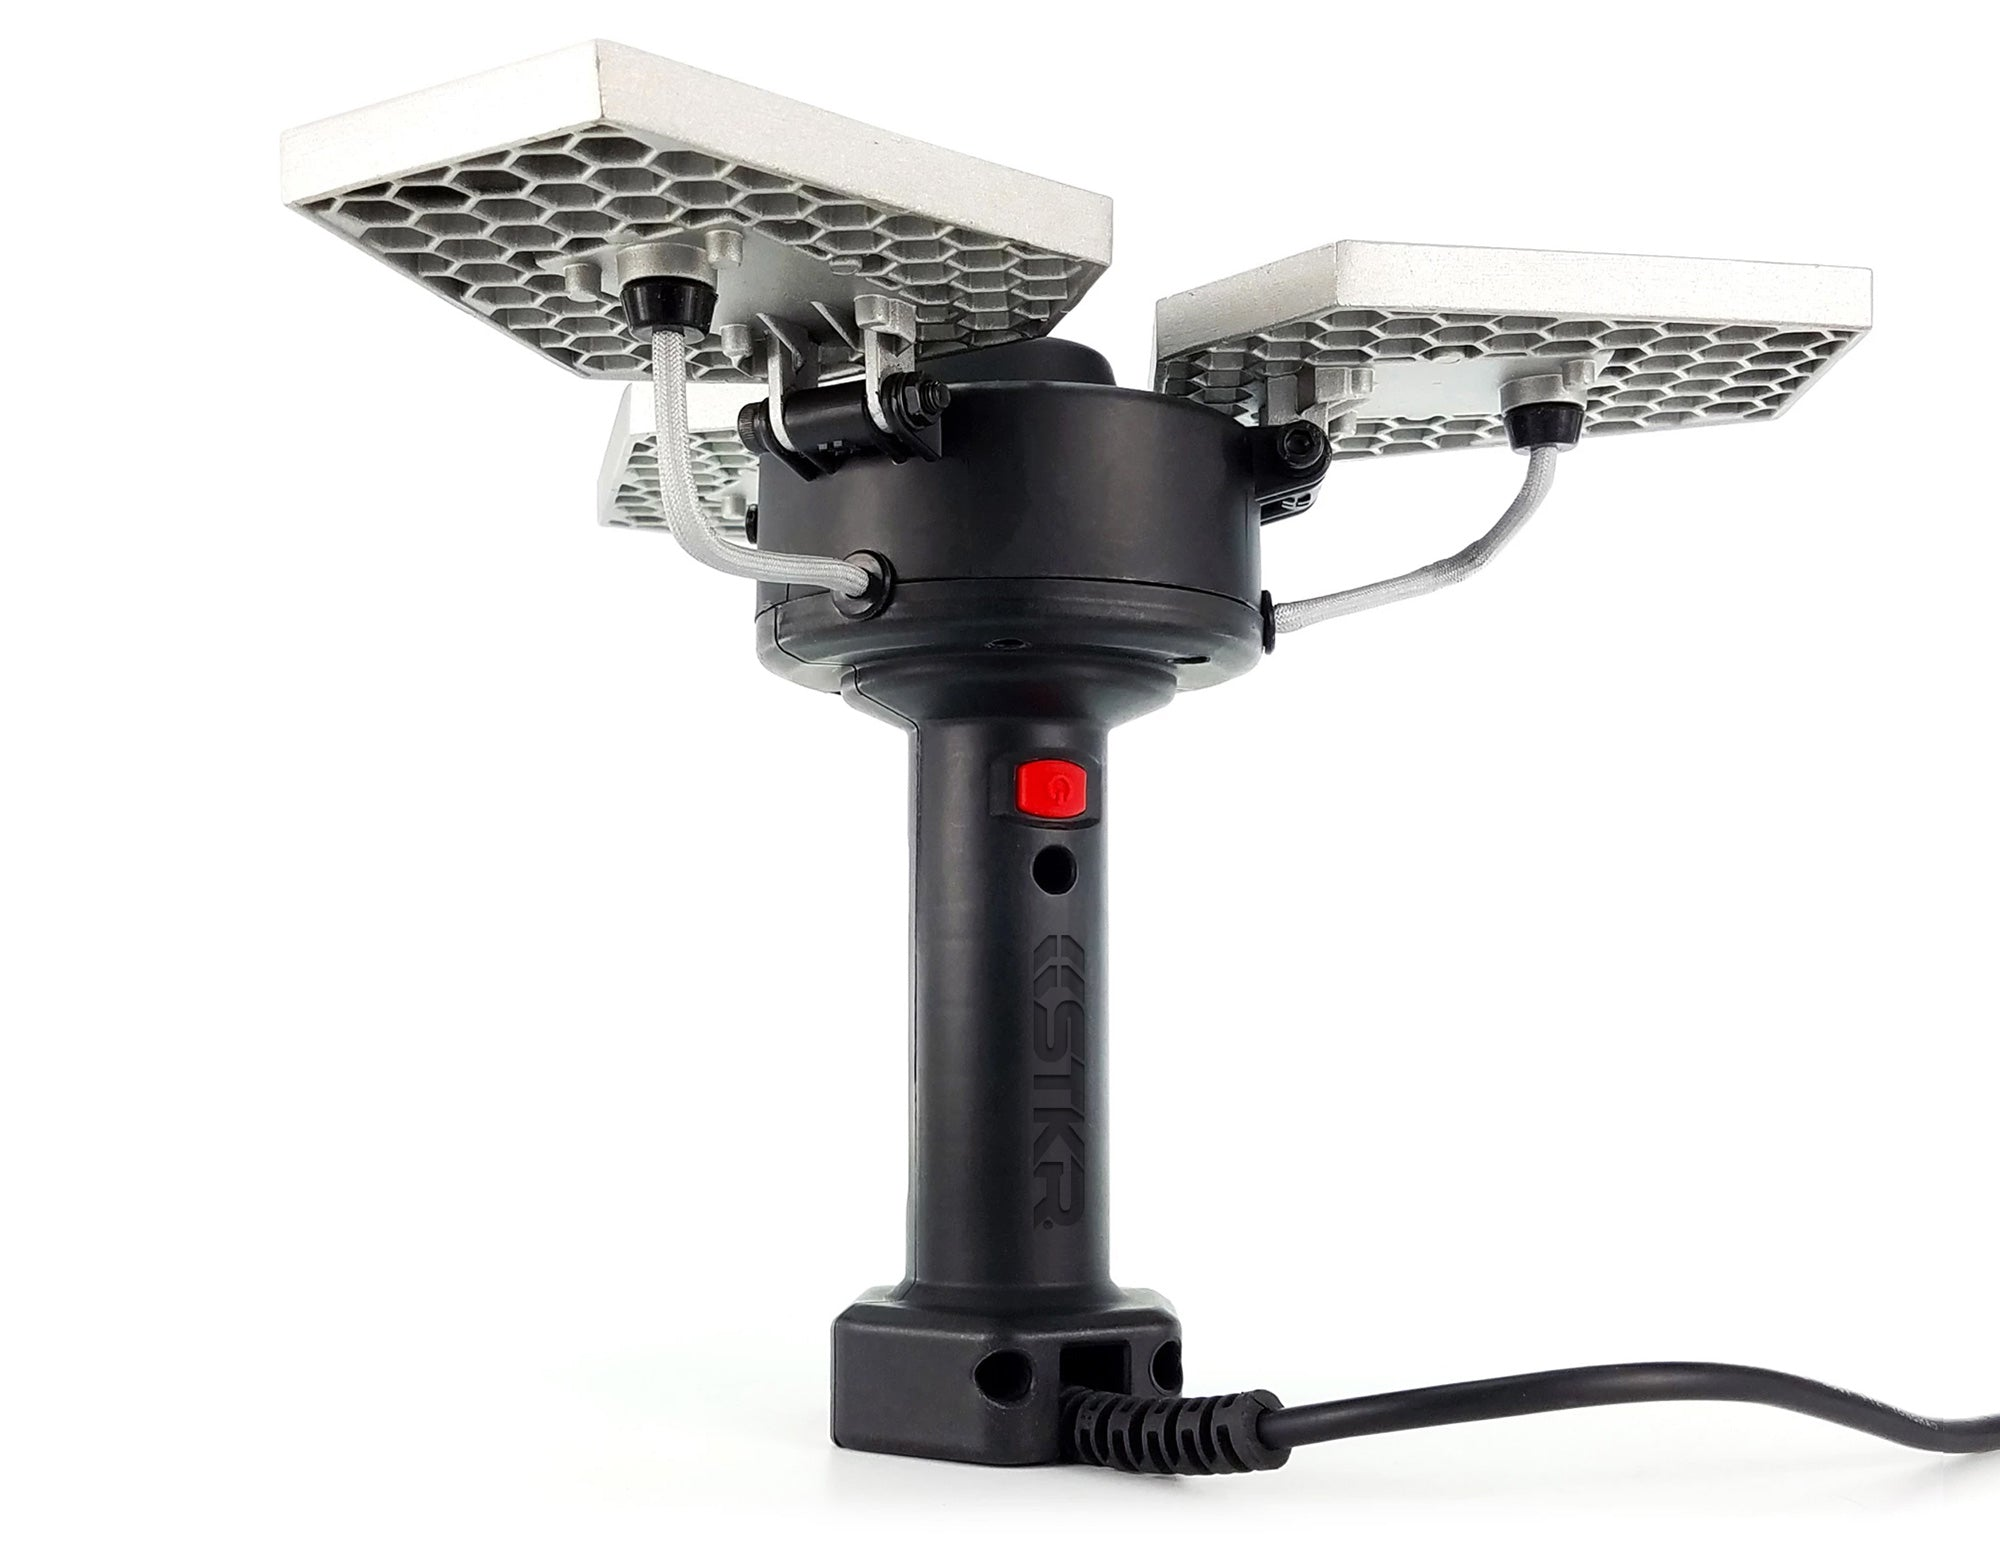 STKR Concepts TRiLIGHT ShopLight Standing Up for mechanic up light - Striker